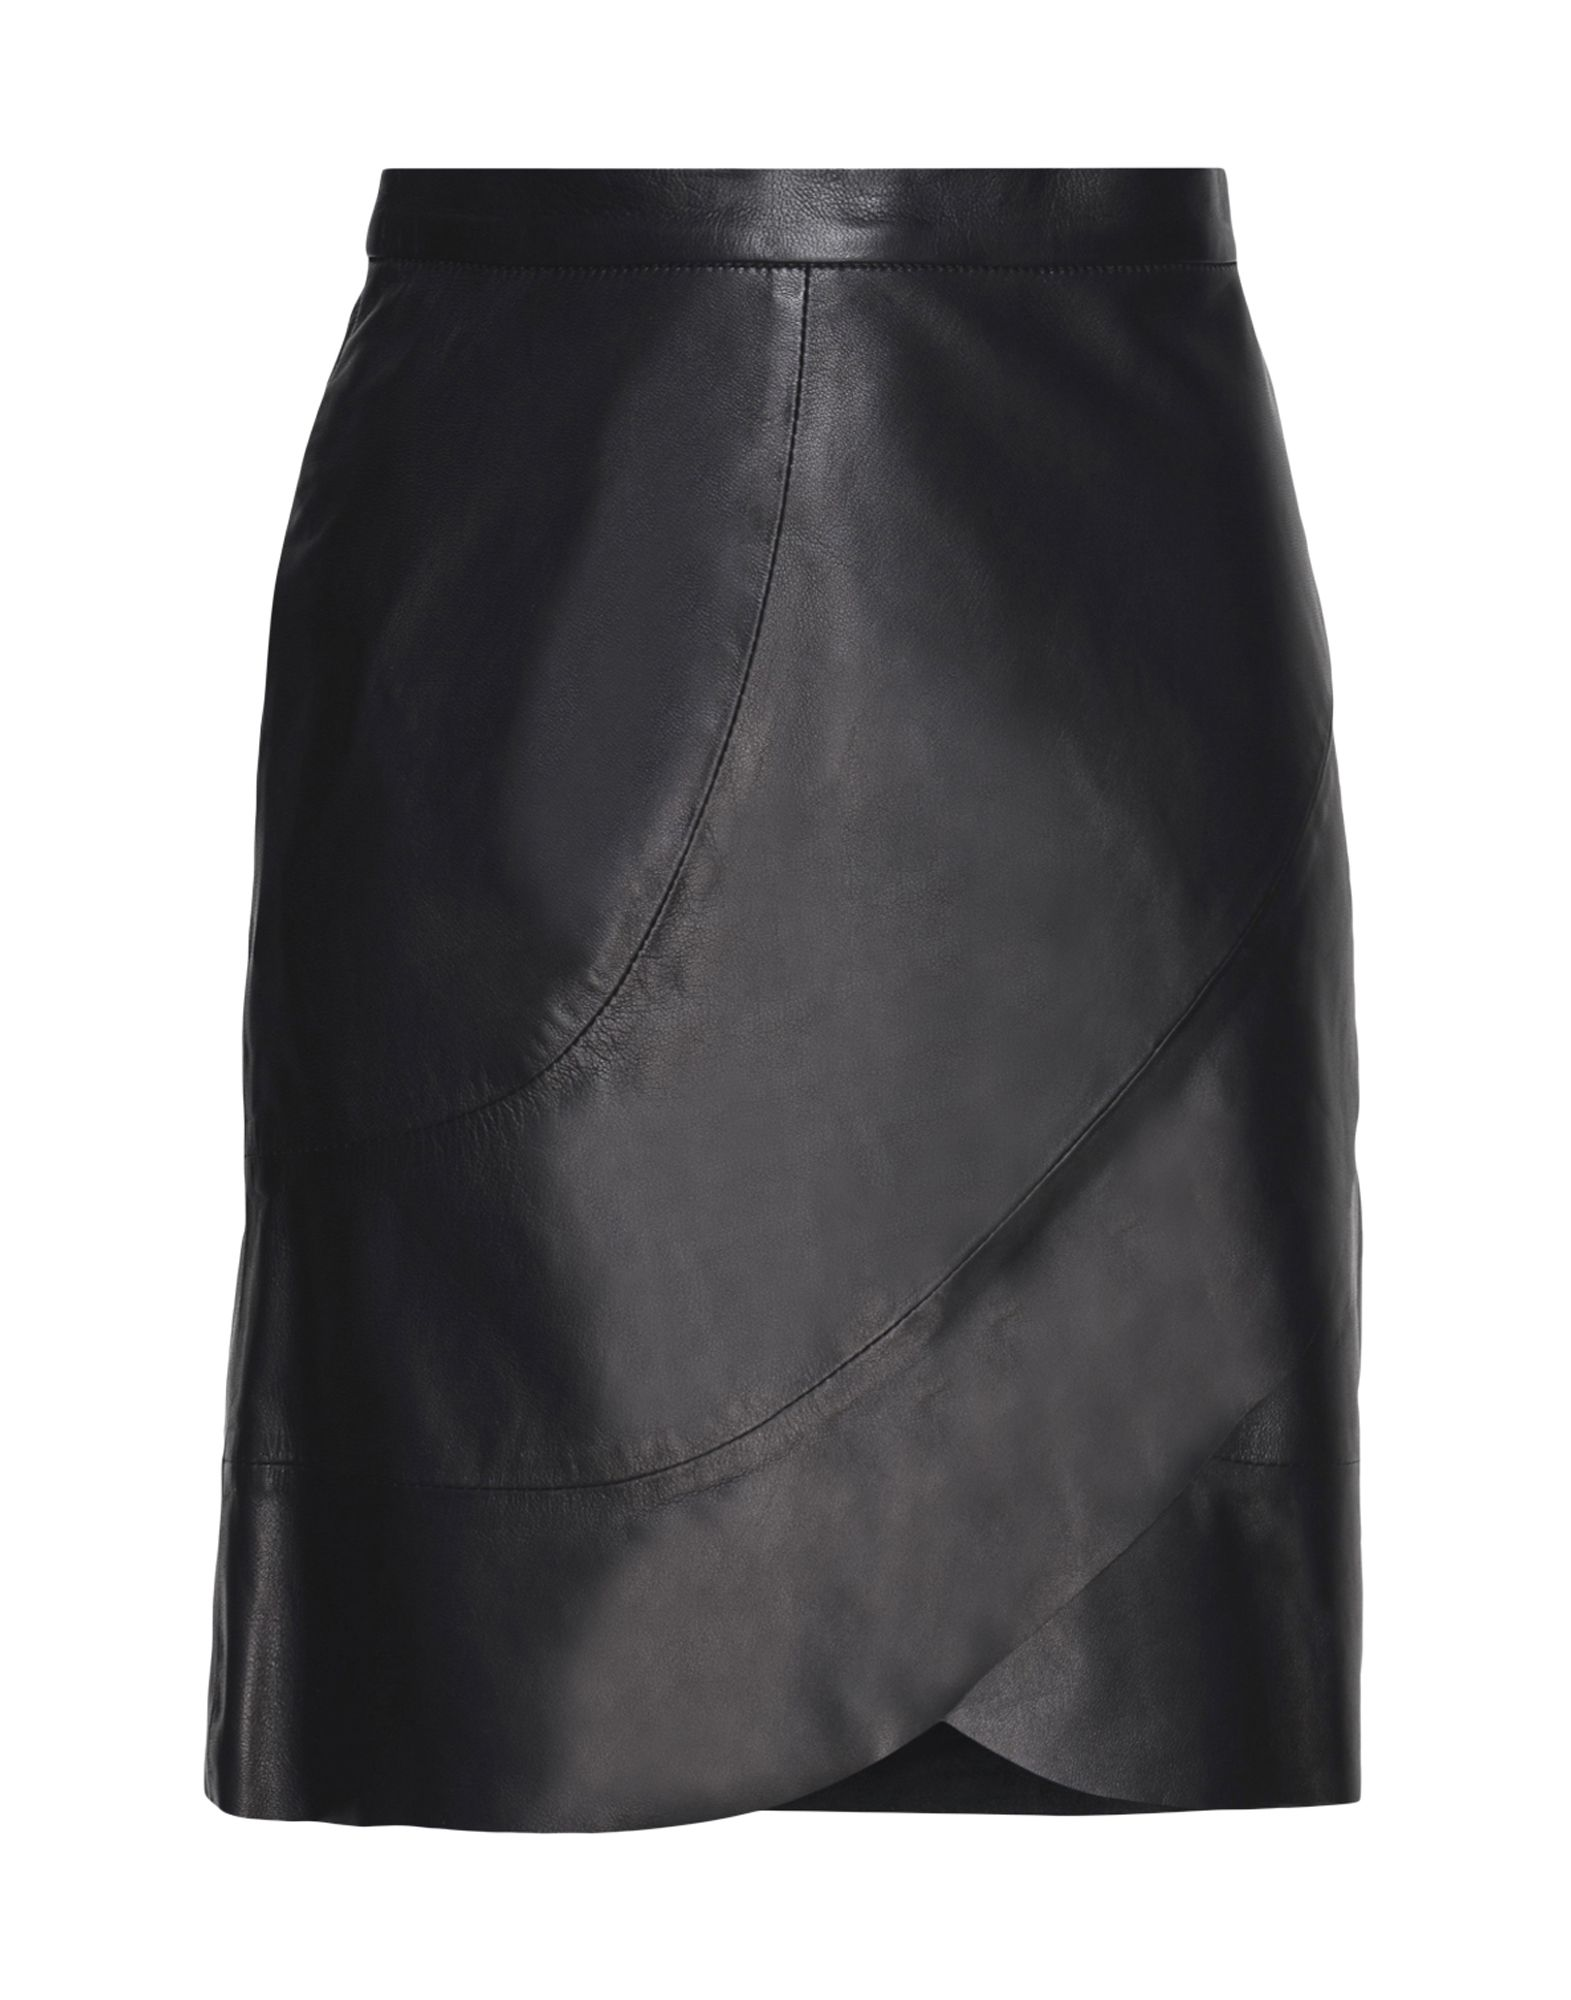 Leather Skirts for Women -Spring-Summer and Fall-Winter Collections  Collections | YOOX